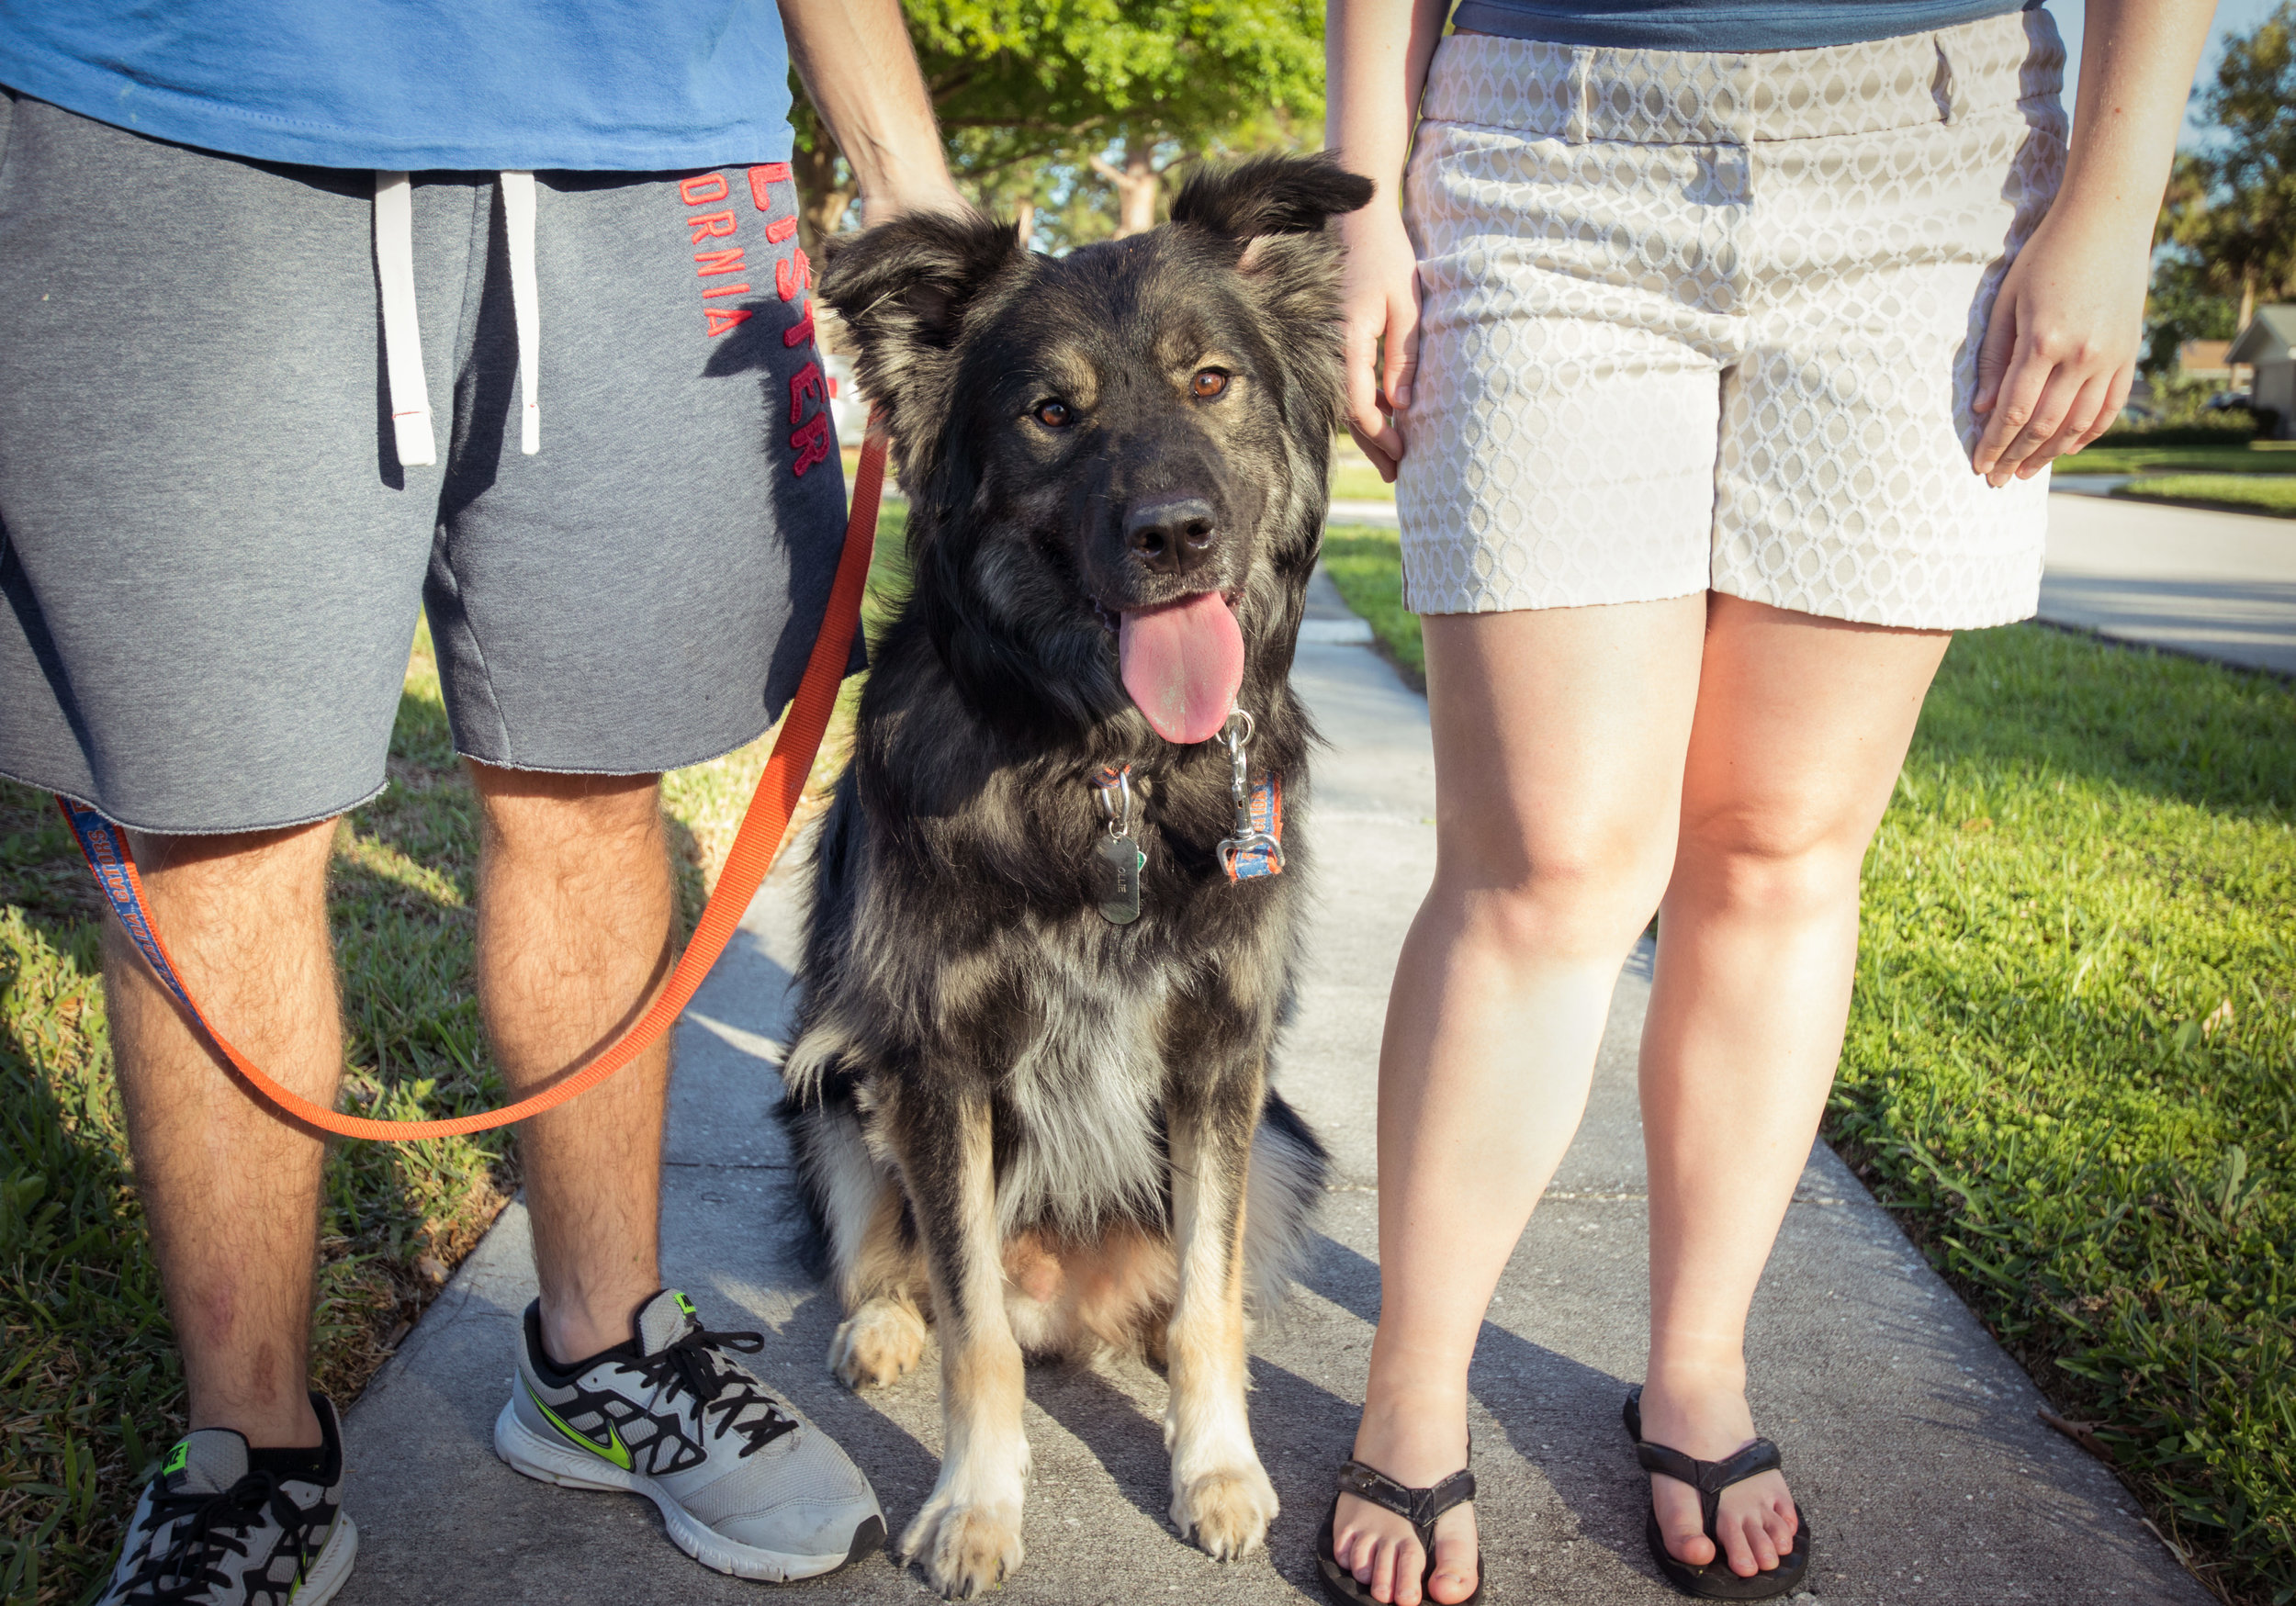 Charlotte and Kevin took Oliver for a walk in a quiet neighborhood in Rockledge. Ollie is a 2-year-old Australian Shepherd Mix, who does an adorable stretch and vocal warmup before barking to let his owners know it is time for his walk!!